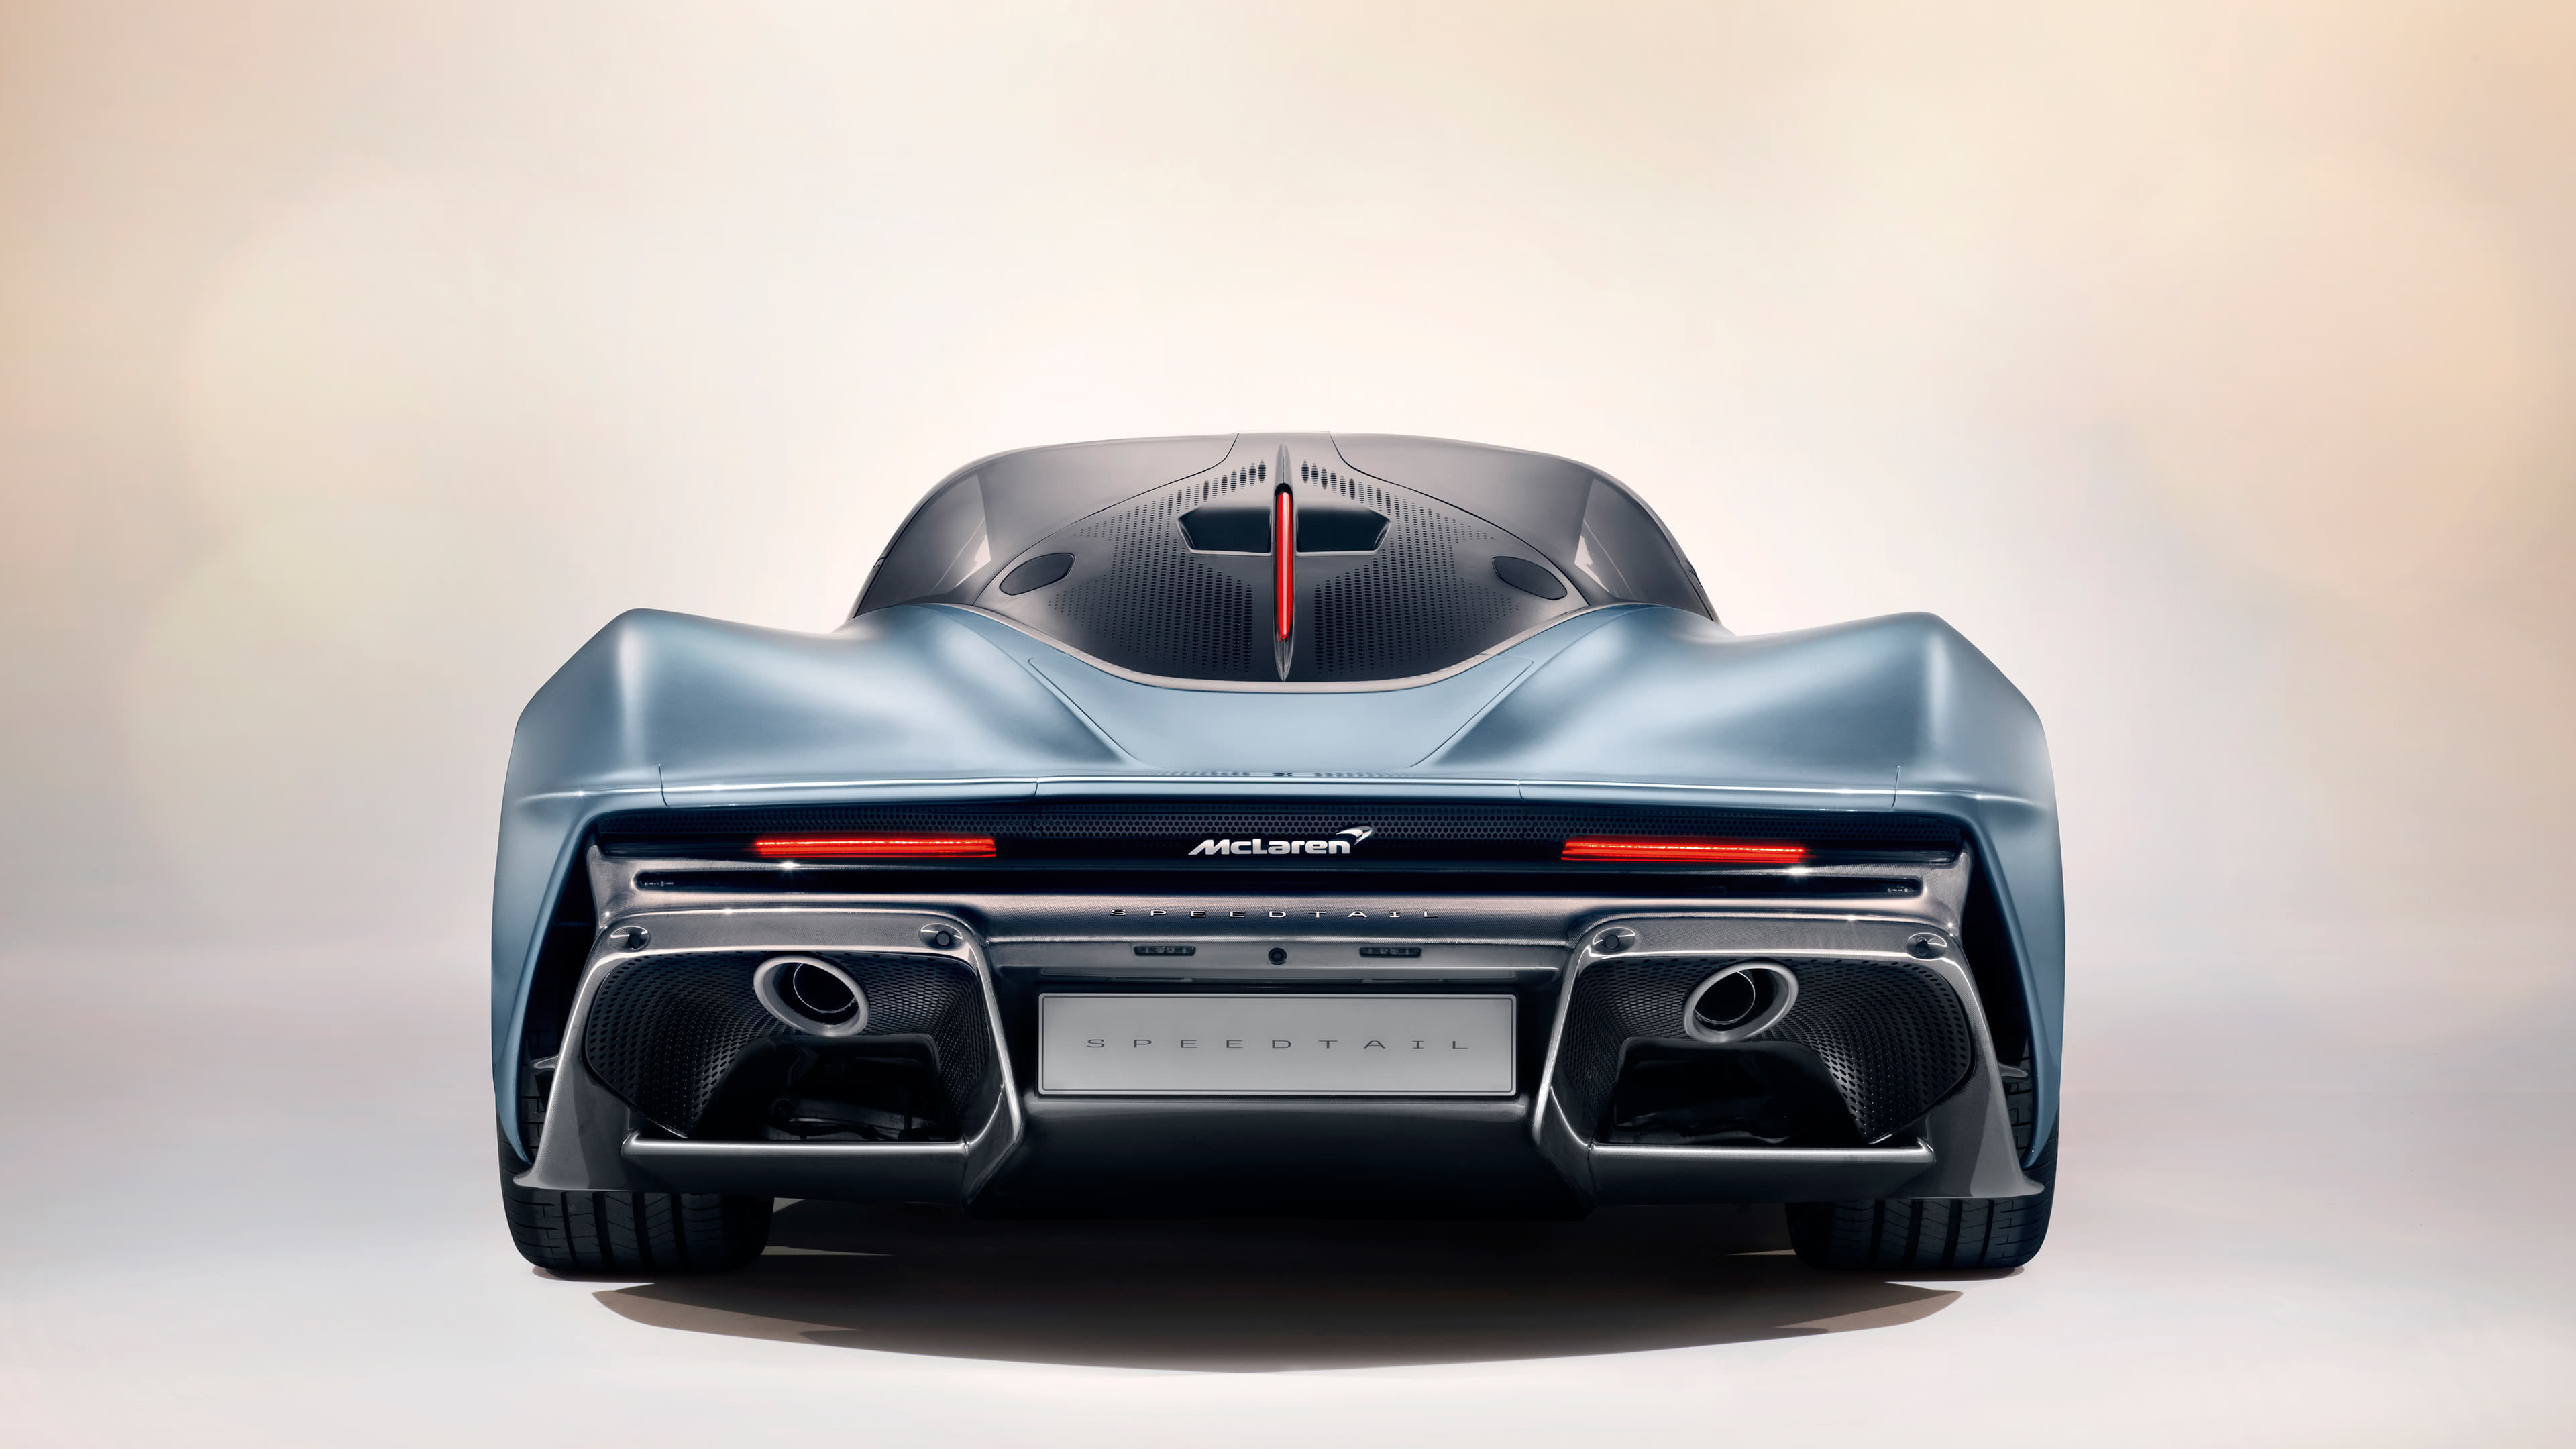 mclaren speedtail rear uhd 4k wallpaper